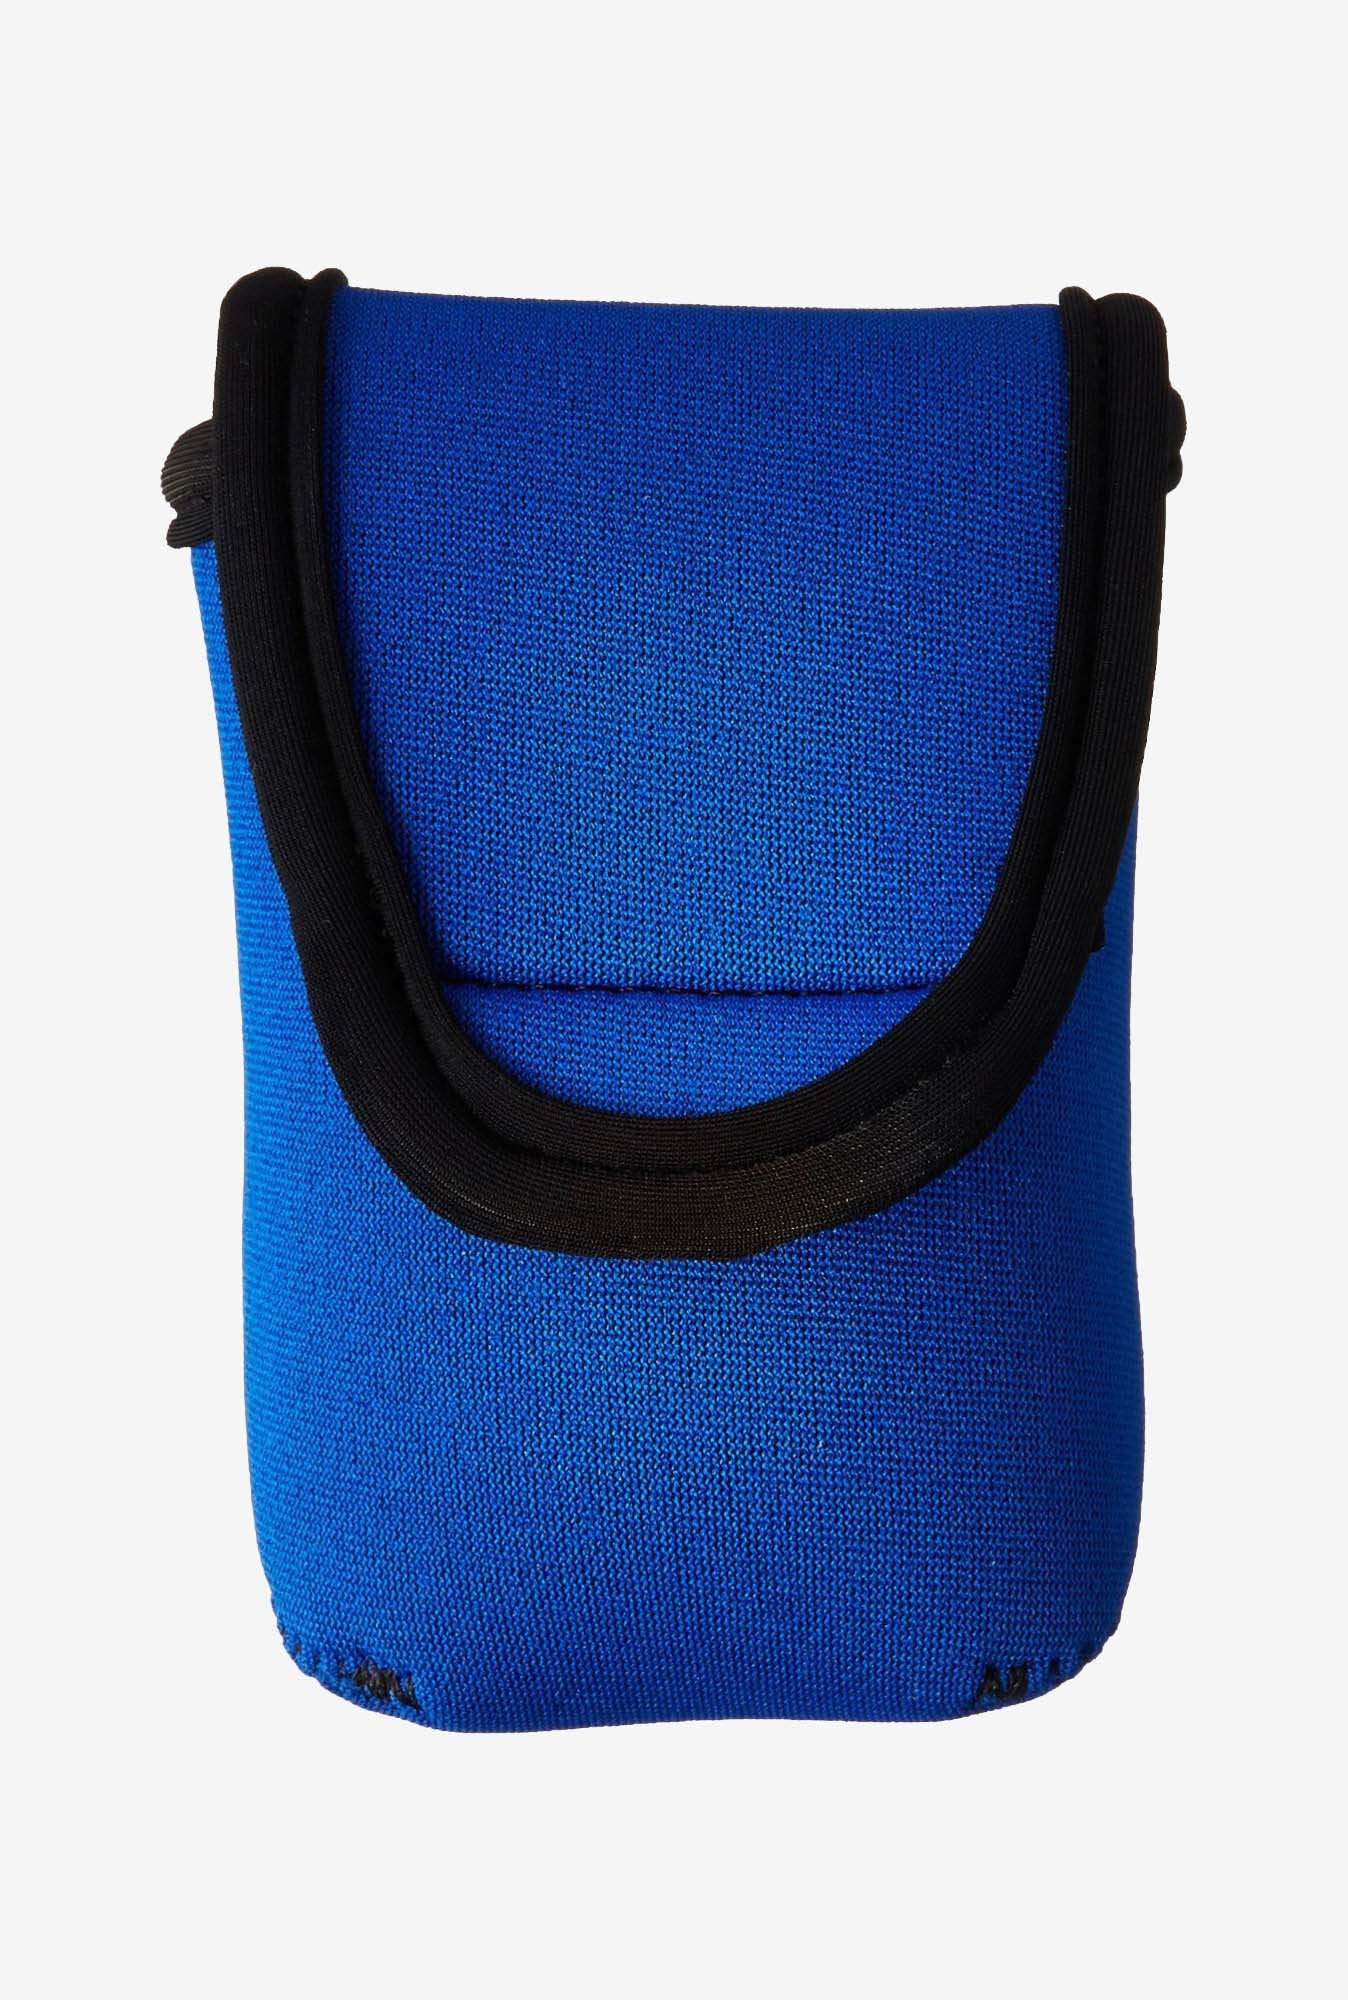 LensCoat LCBBPSBL Bodybag Ps (Blue)